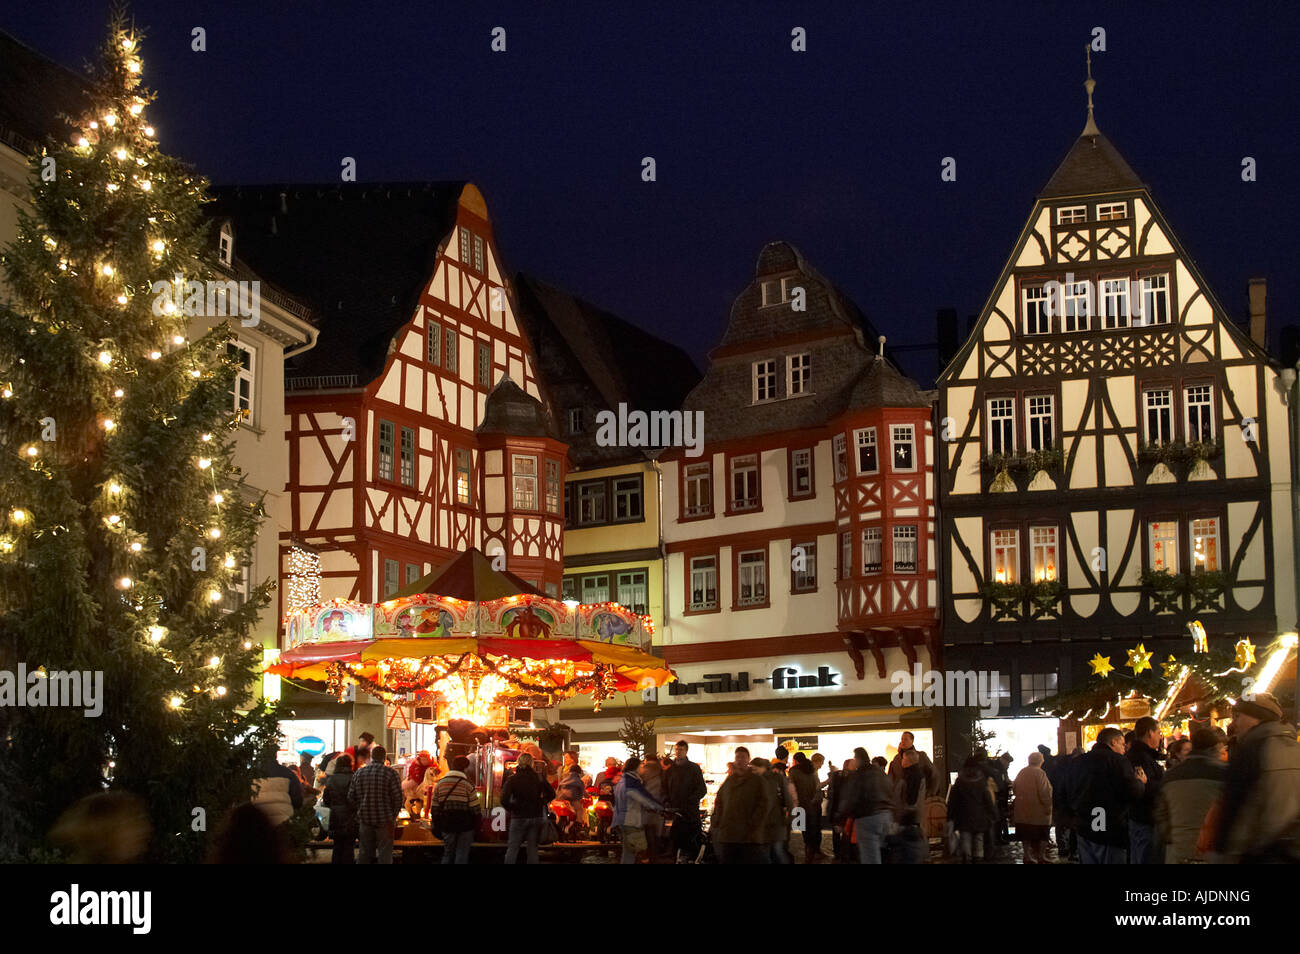 weihnachtsmarkt im historischen zentrum der stadt limburg. Black Bedroom Furniture Sets. Home Design Ideas